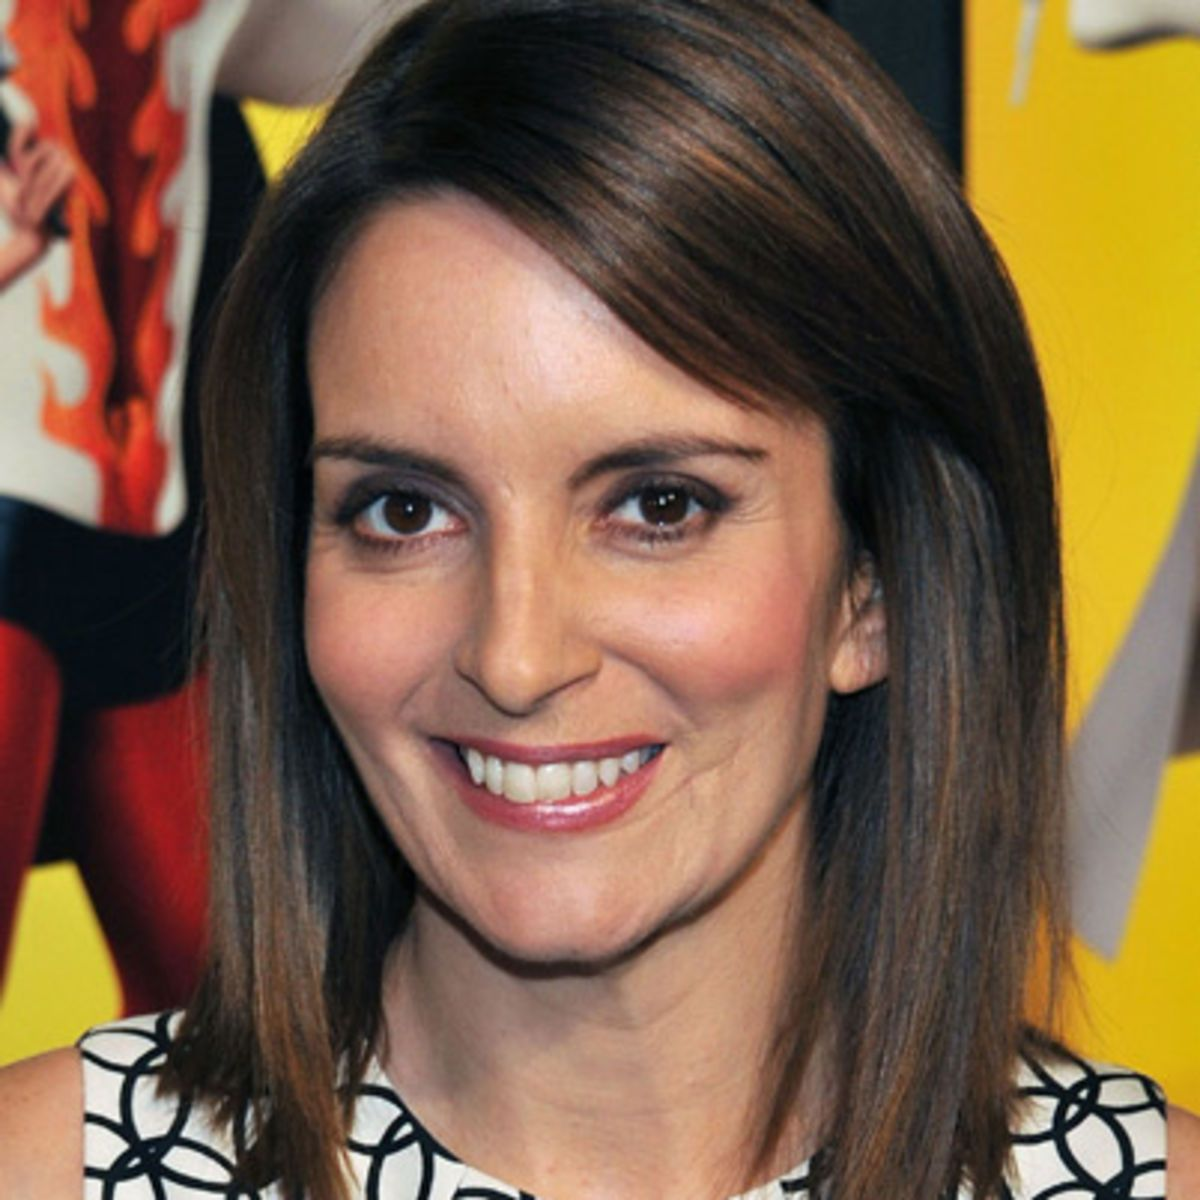 Tina Fey Is An Actress Comedian Writer And Producer Known For Her